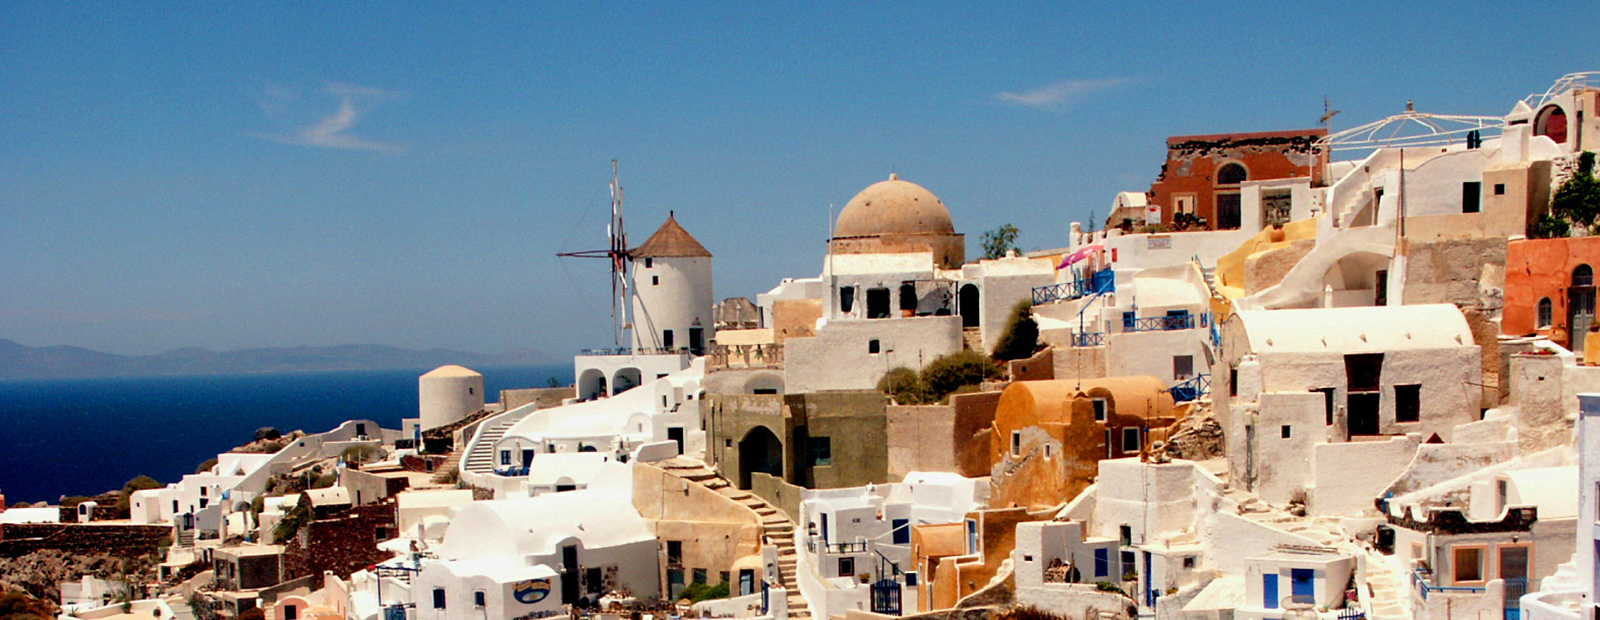 Exclusive holiday villas on Santorini island